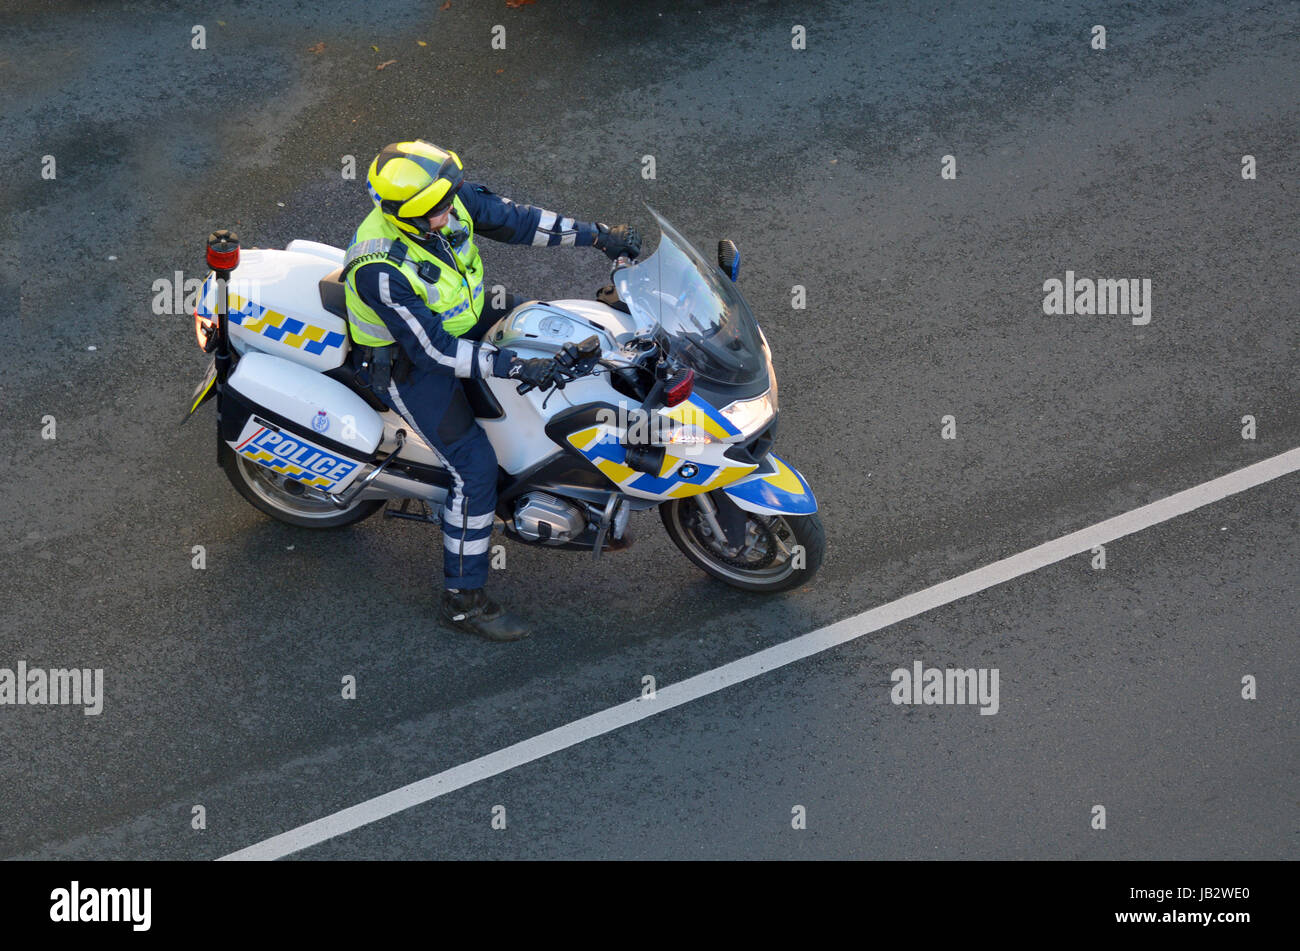 Police - Force Traffic Biker. Traffic Police Monitor traffic to ensure motorists observe traffic regulations and - Stock Image